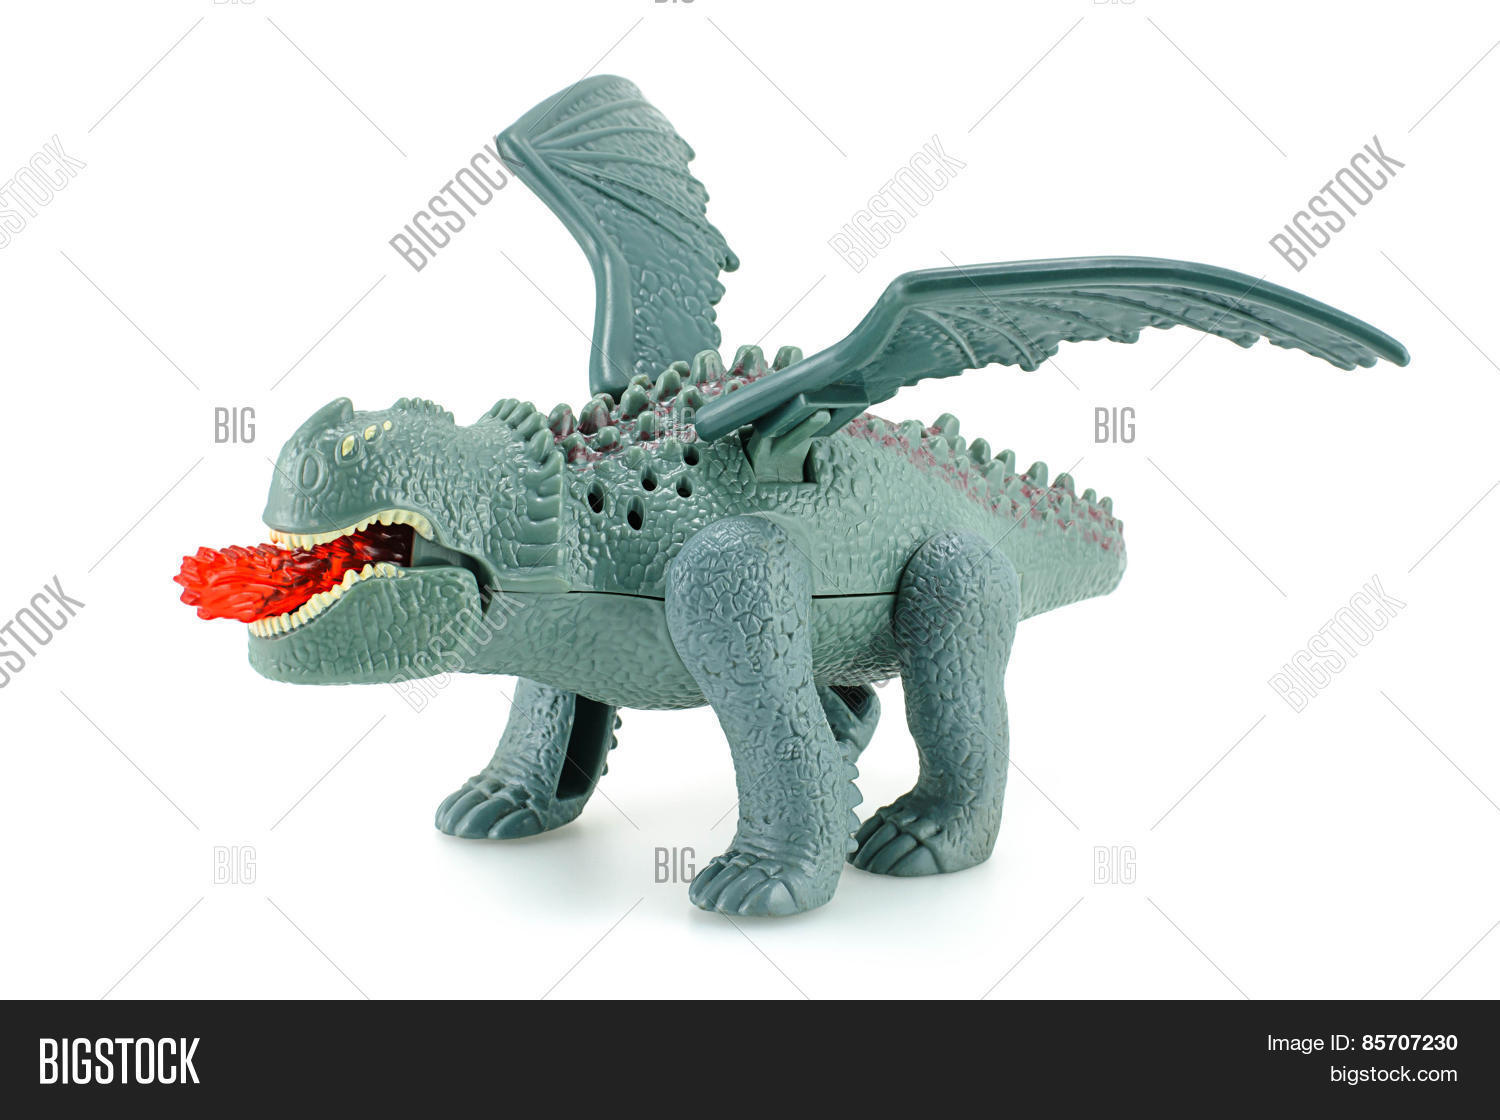 Red death dragon toy image photo free trial bigstock red death dragon toy character from how to train your dragon ccuart Images